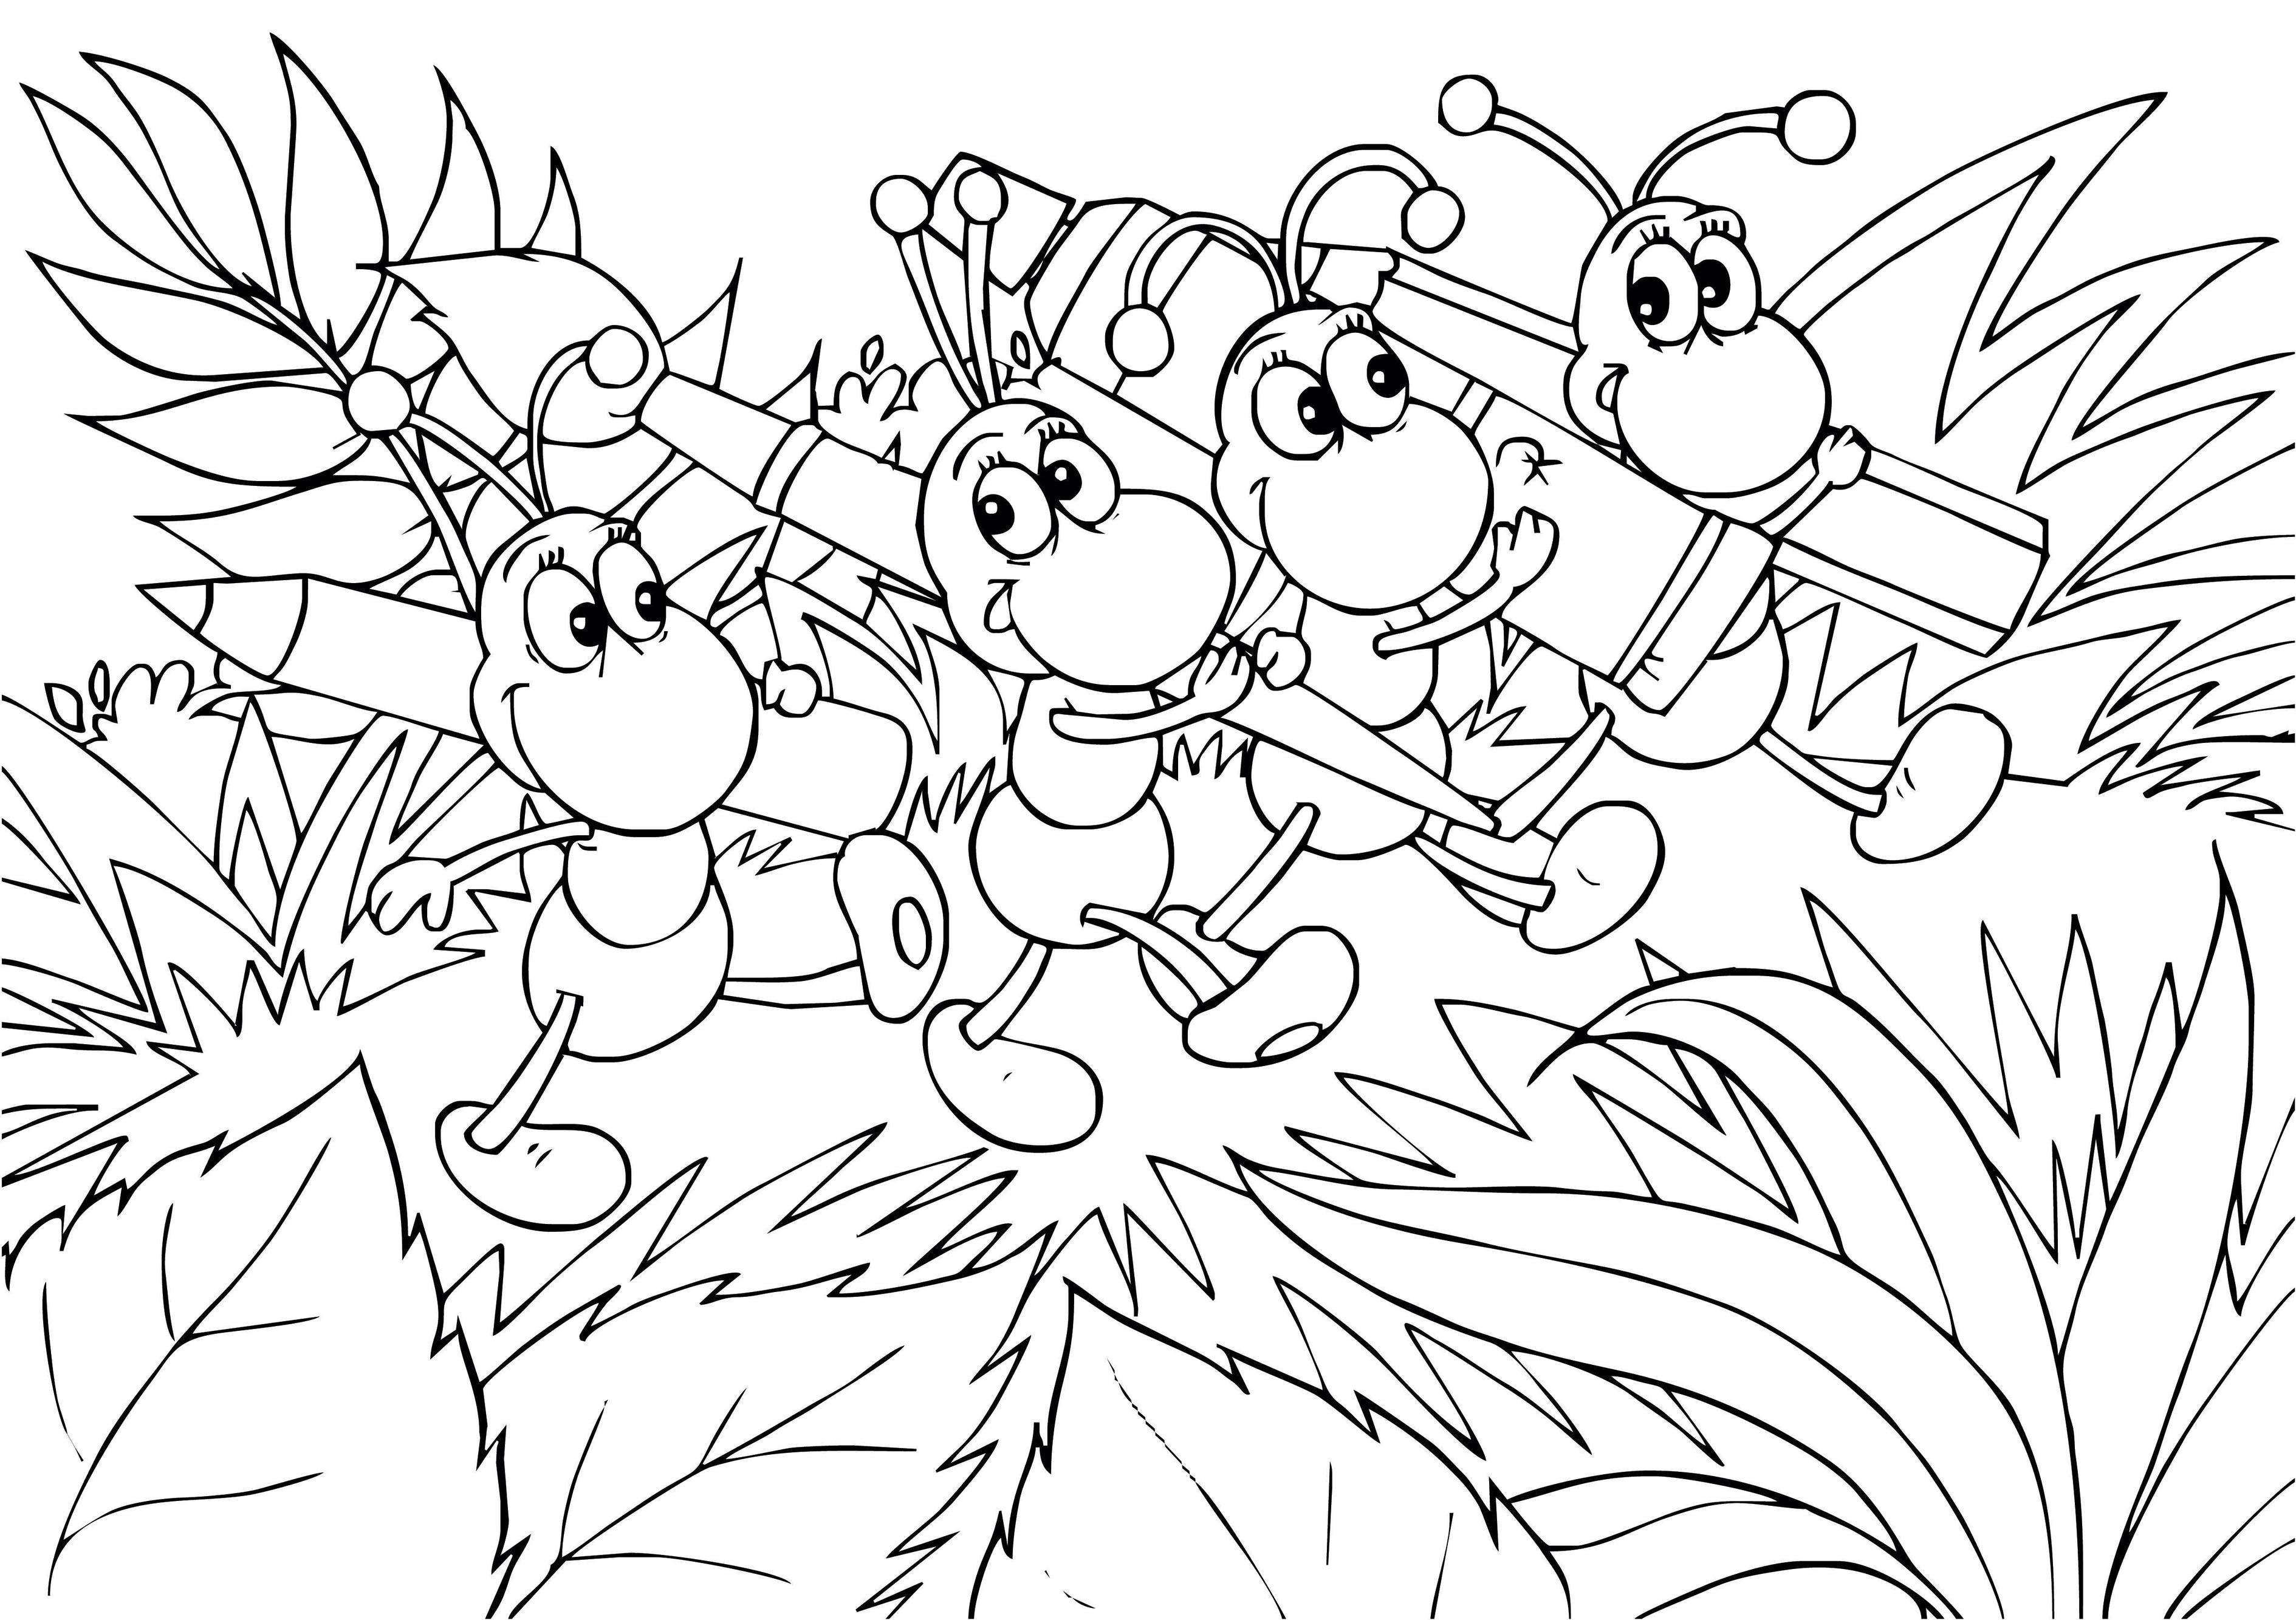 Ant Outline Drawing Ant Outline Coloring Page Cute Ant